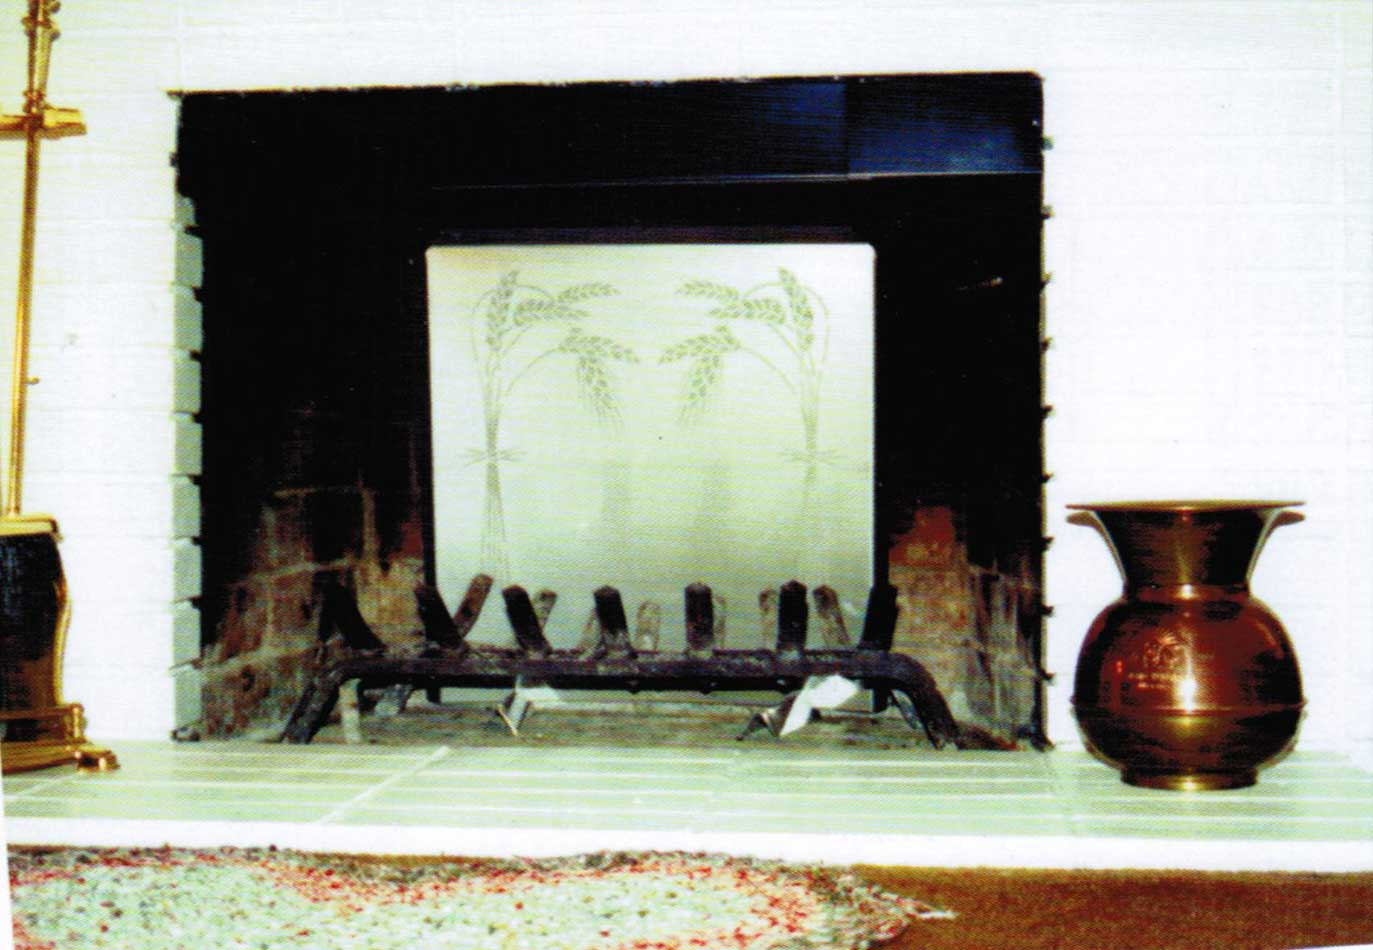 Paykel offeres a wide selection of Fireplace Firebacks. We have Cast Iron